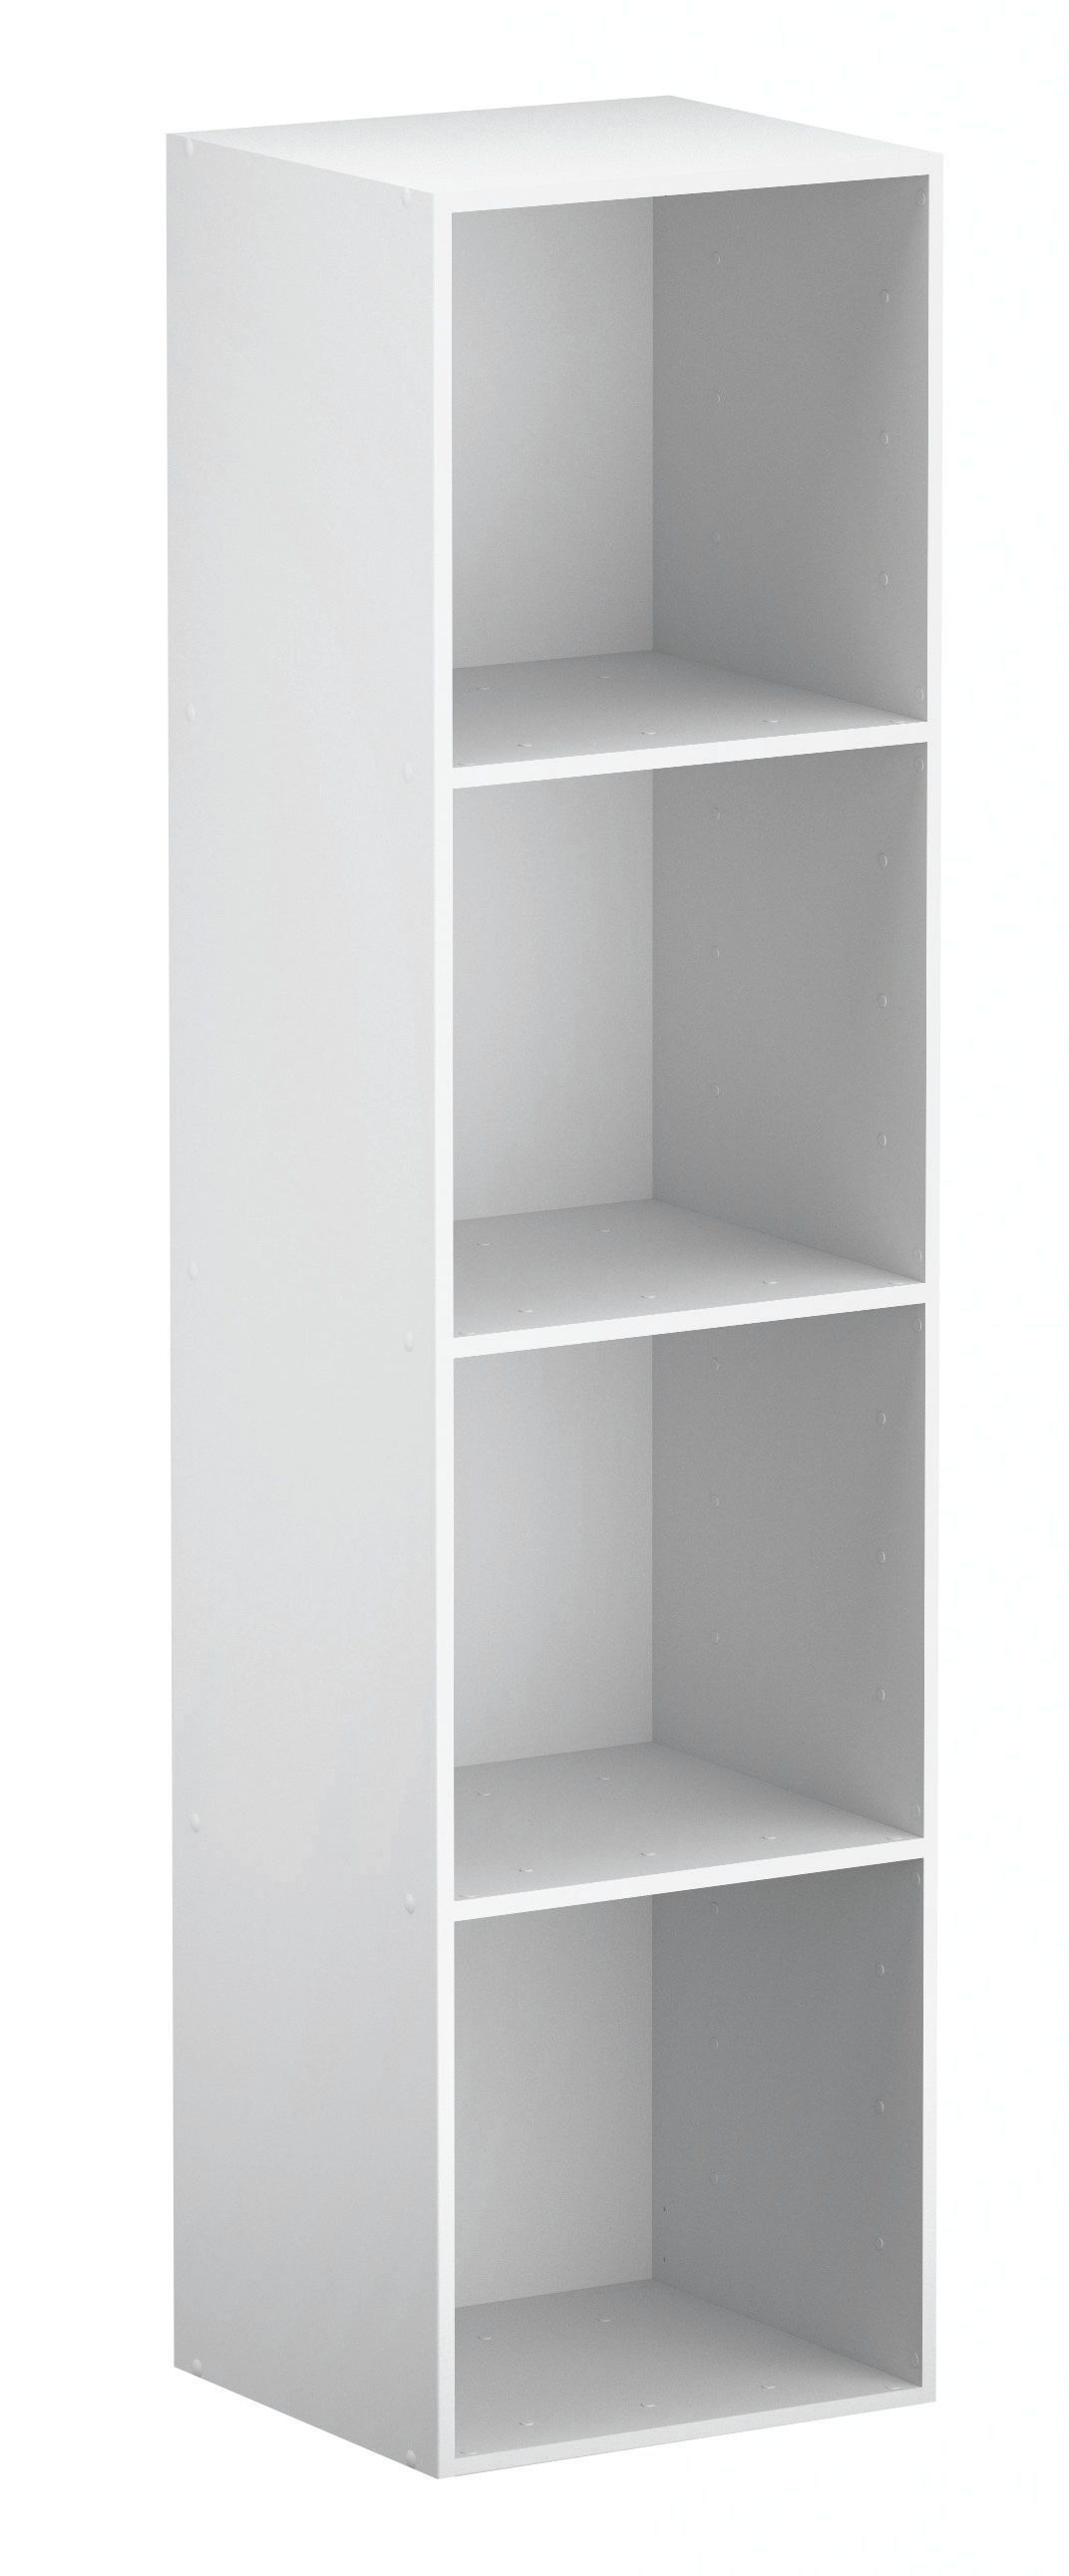 Form Konnect White 4 Cube Shelving Unit H 1372mm W 352mm